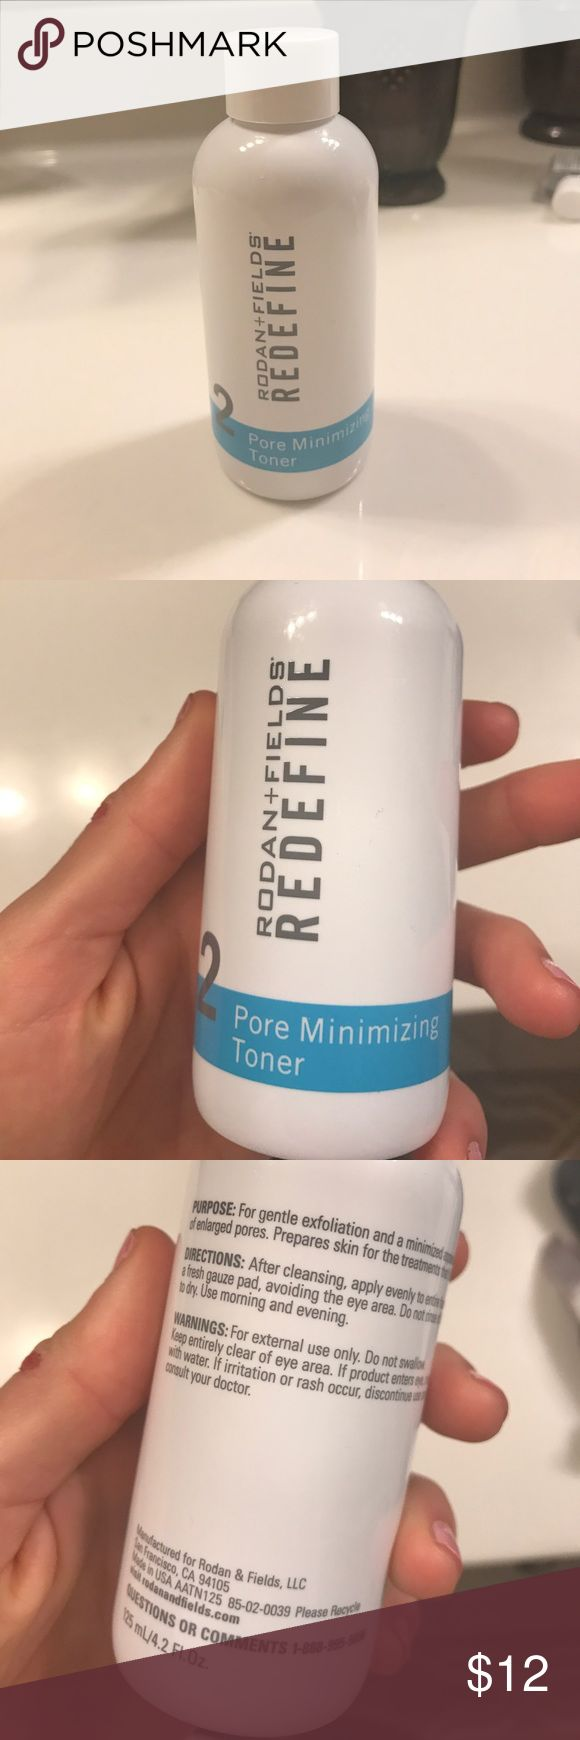 Rodan and Fields Redefine Toner This product is opened and is about 3/4 full. Rodan and Fields Other